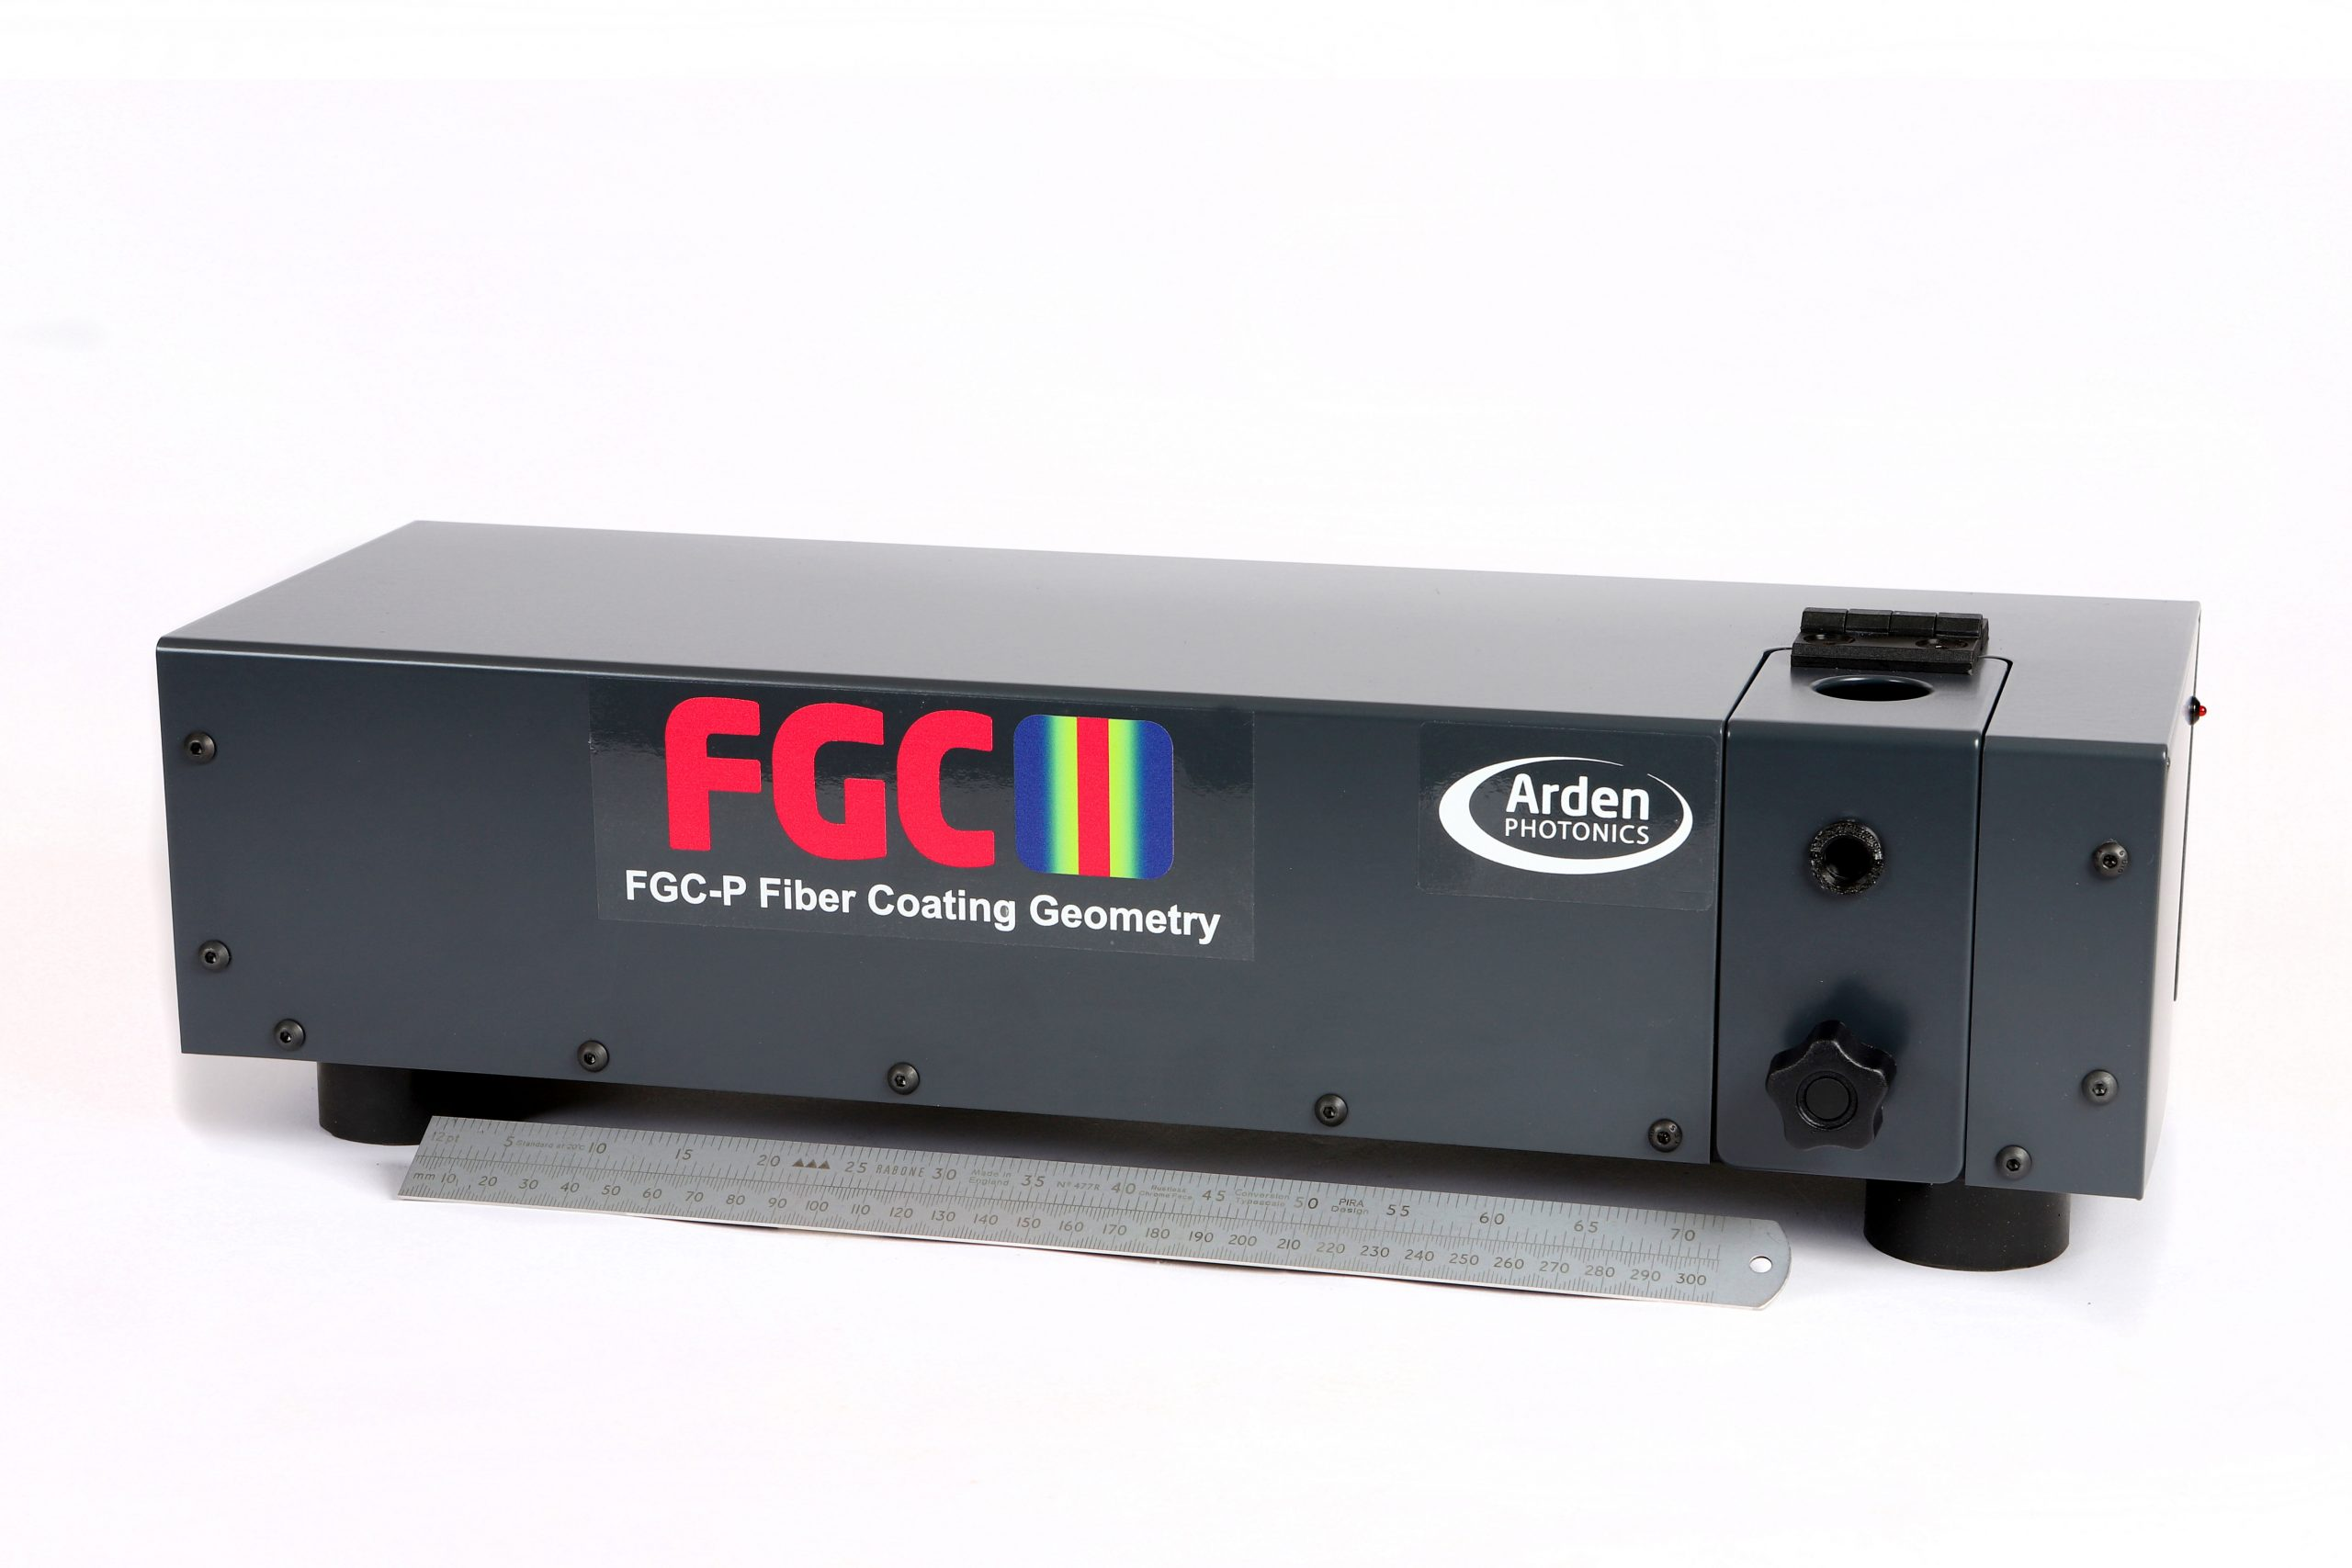 FGC-P coating geometry system